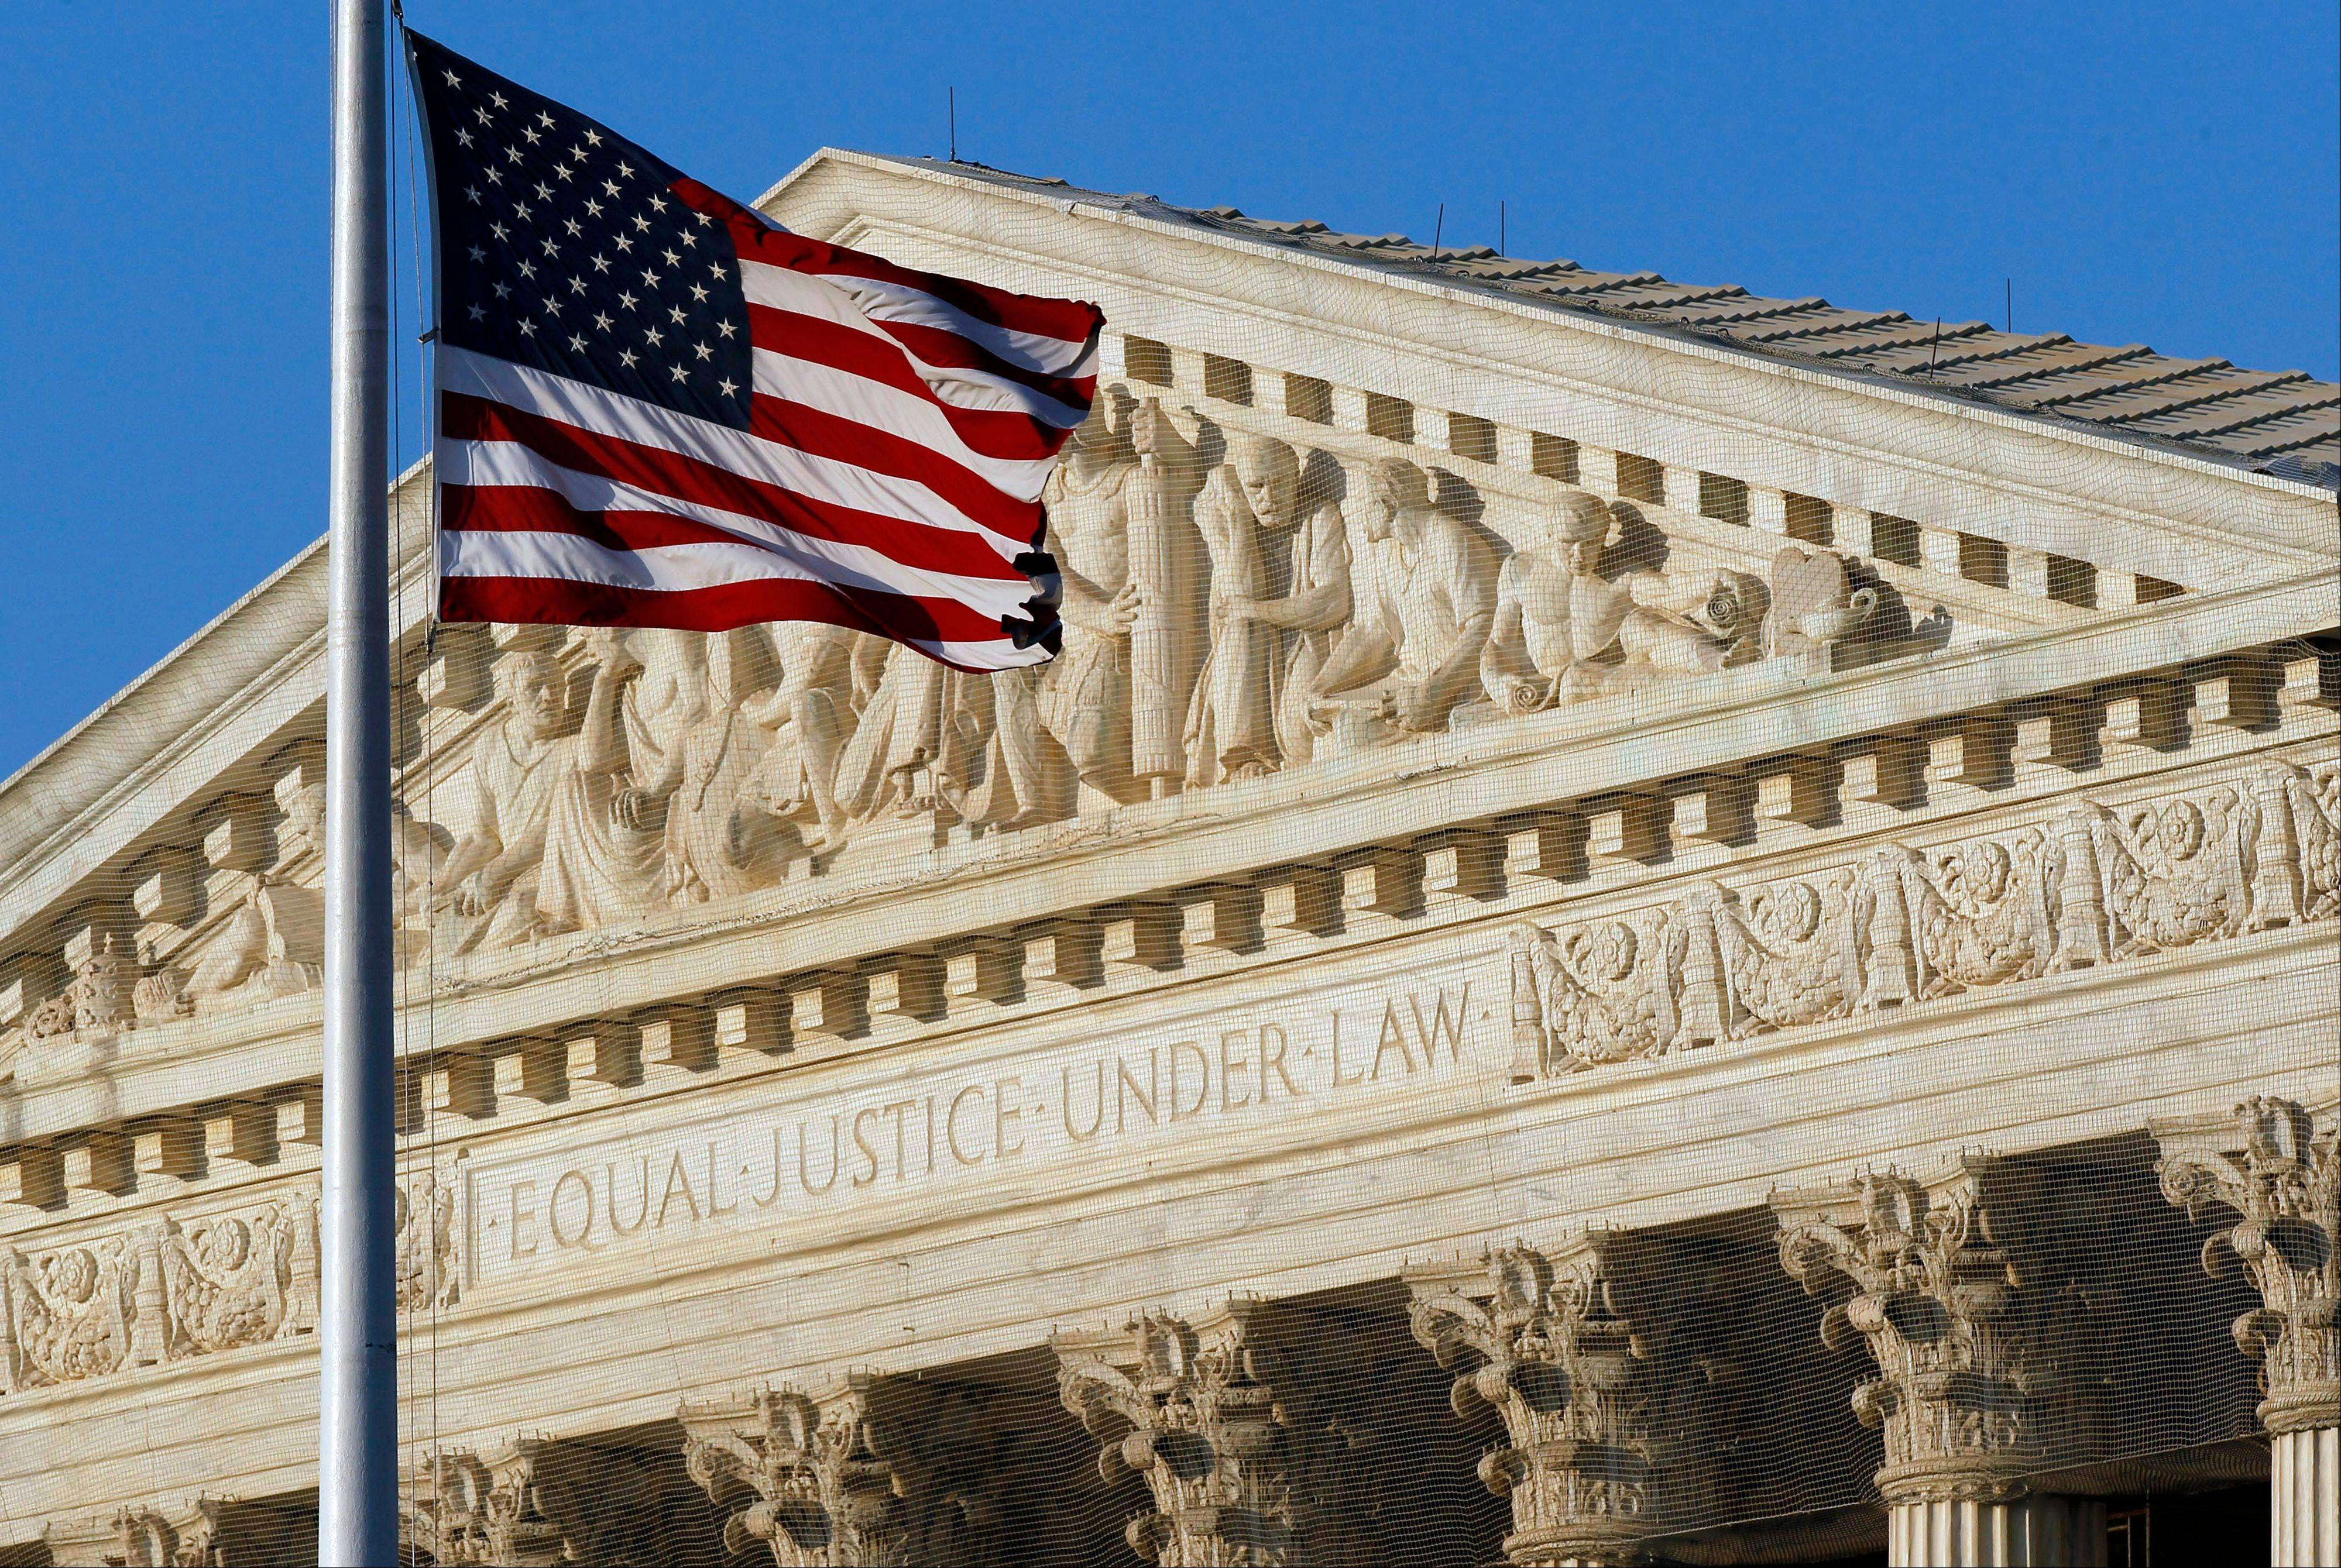 The Supreme Court is expected to rule on the constitutionality of the Affordable Care Act.